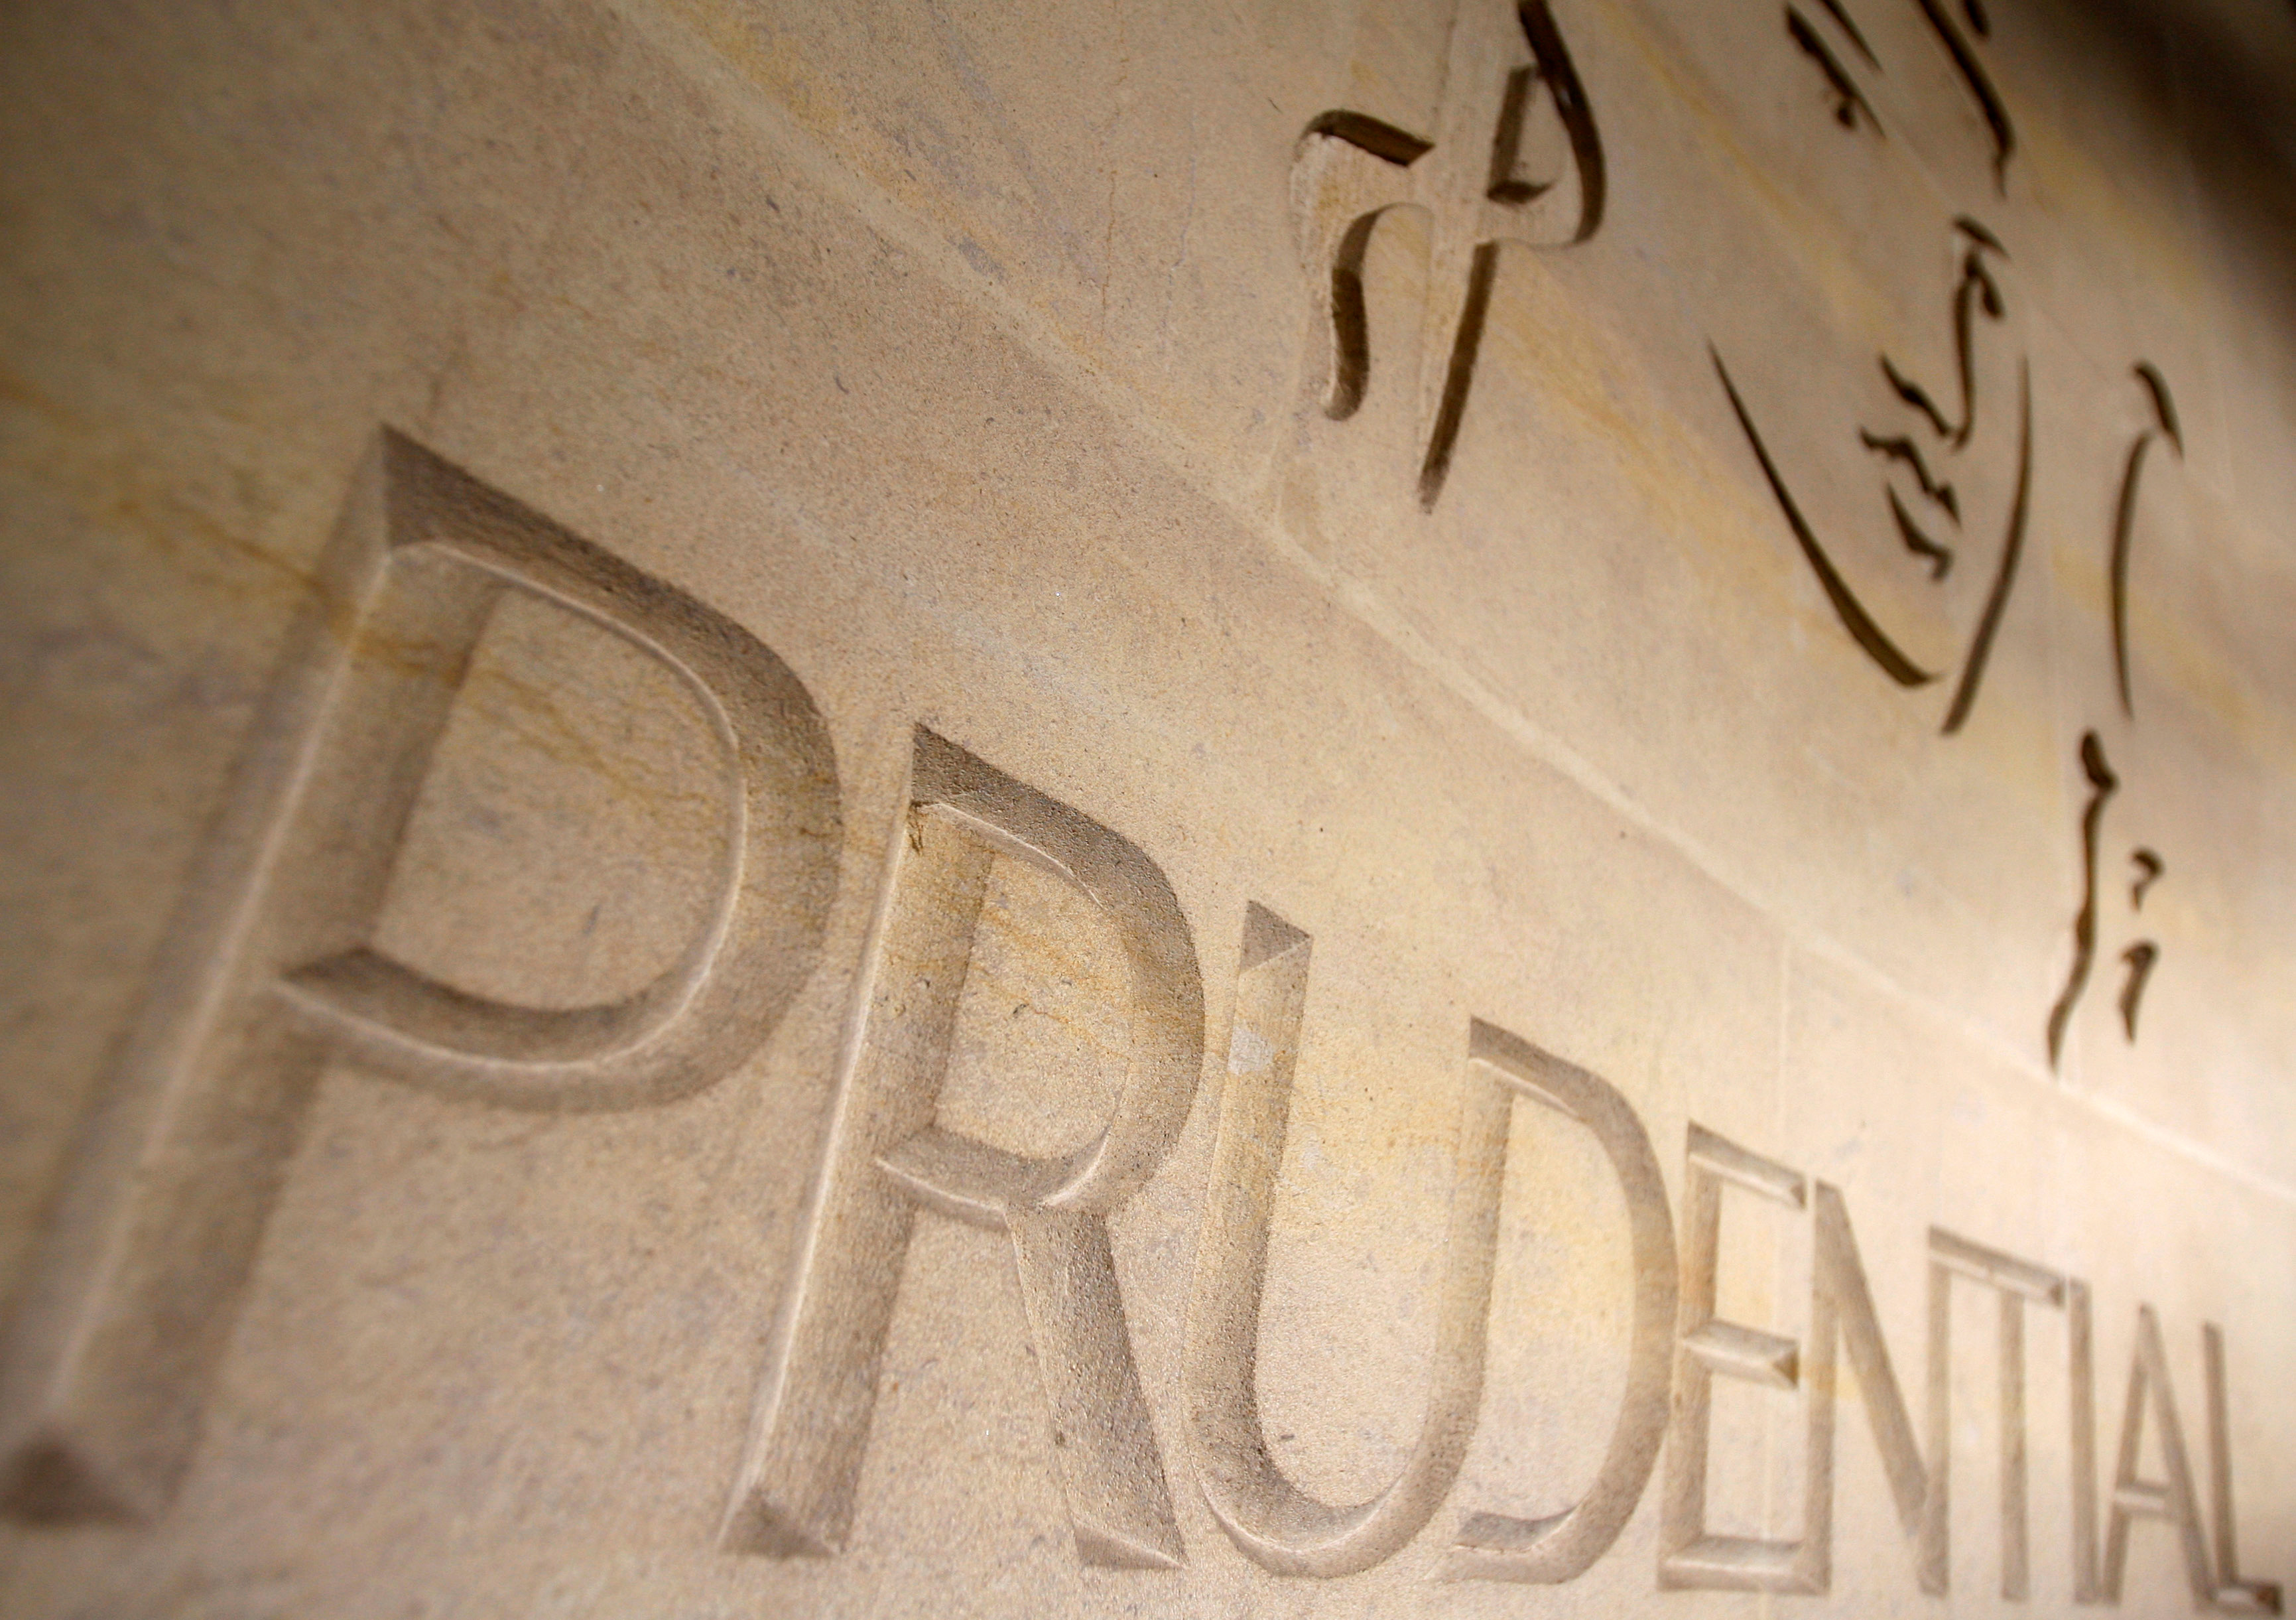 Prudential share price rallies as group posts rise in profits